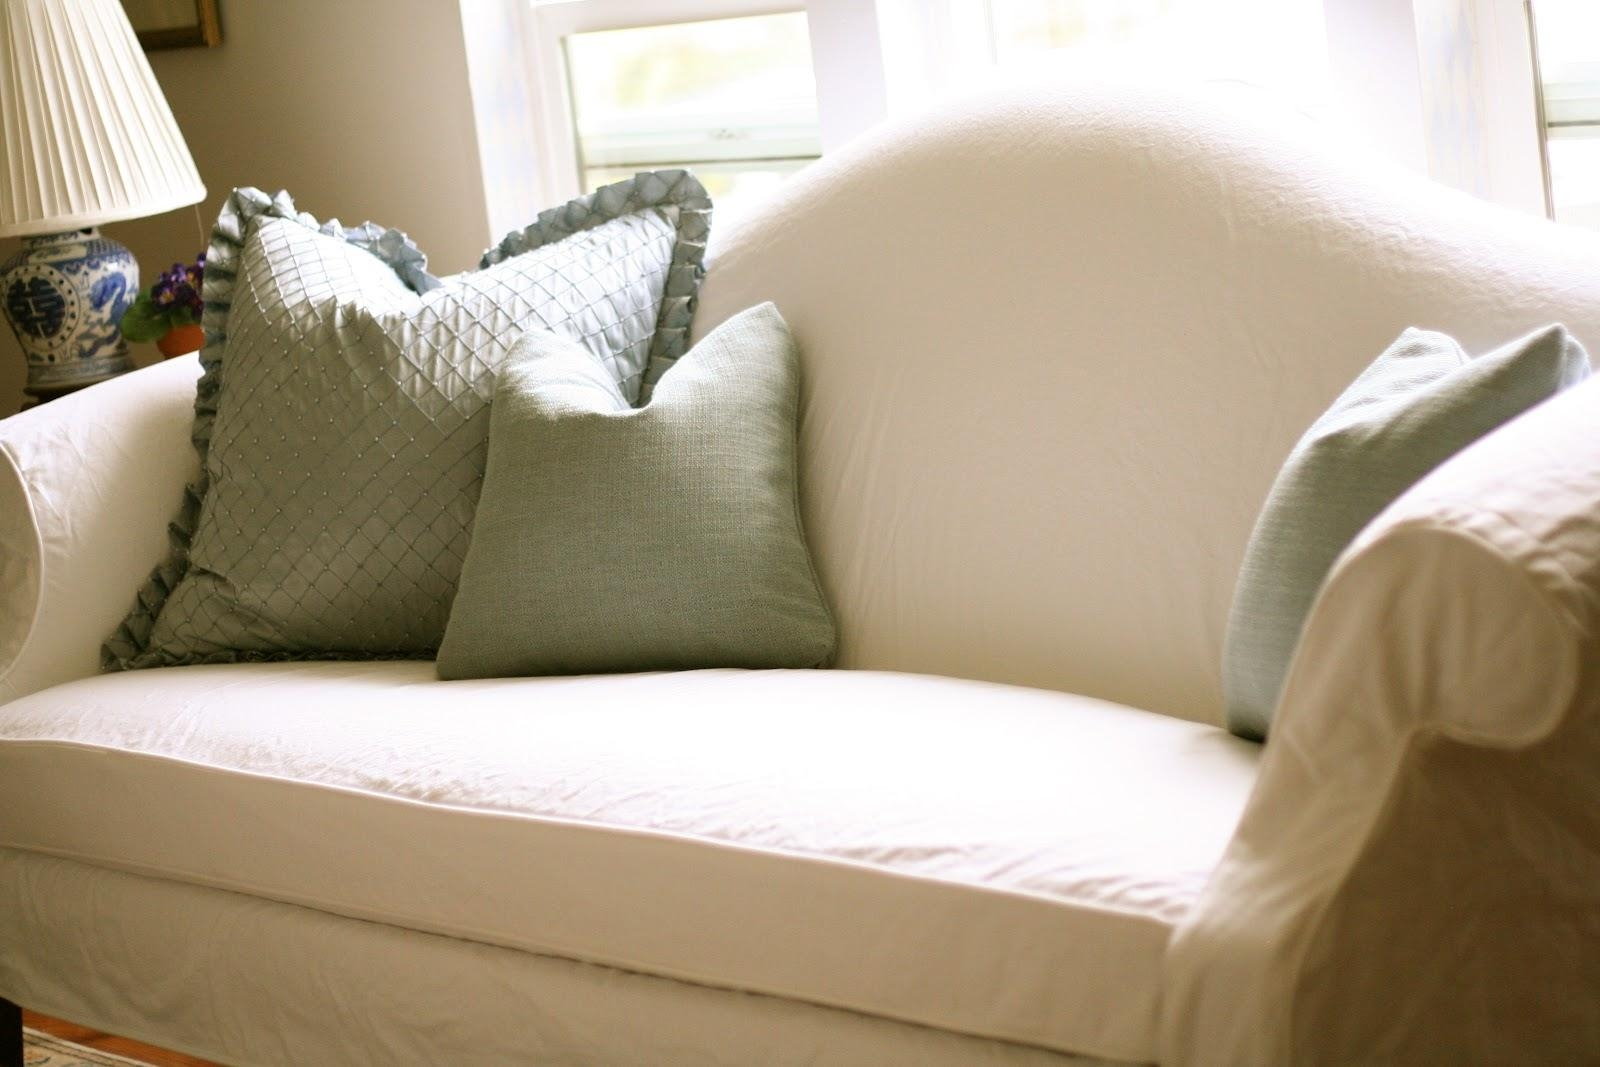 Custom Slipcoversshelley: White Camel Back Couch Intended For Camel Back Couch Slipcovers (Image 8 of 20)